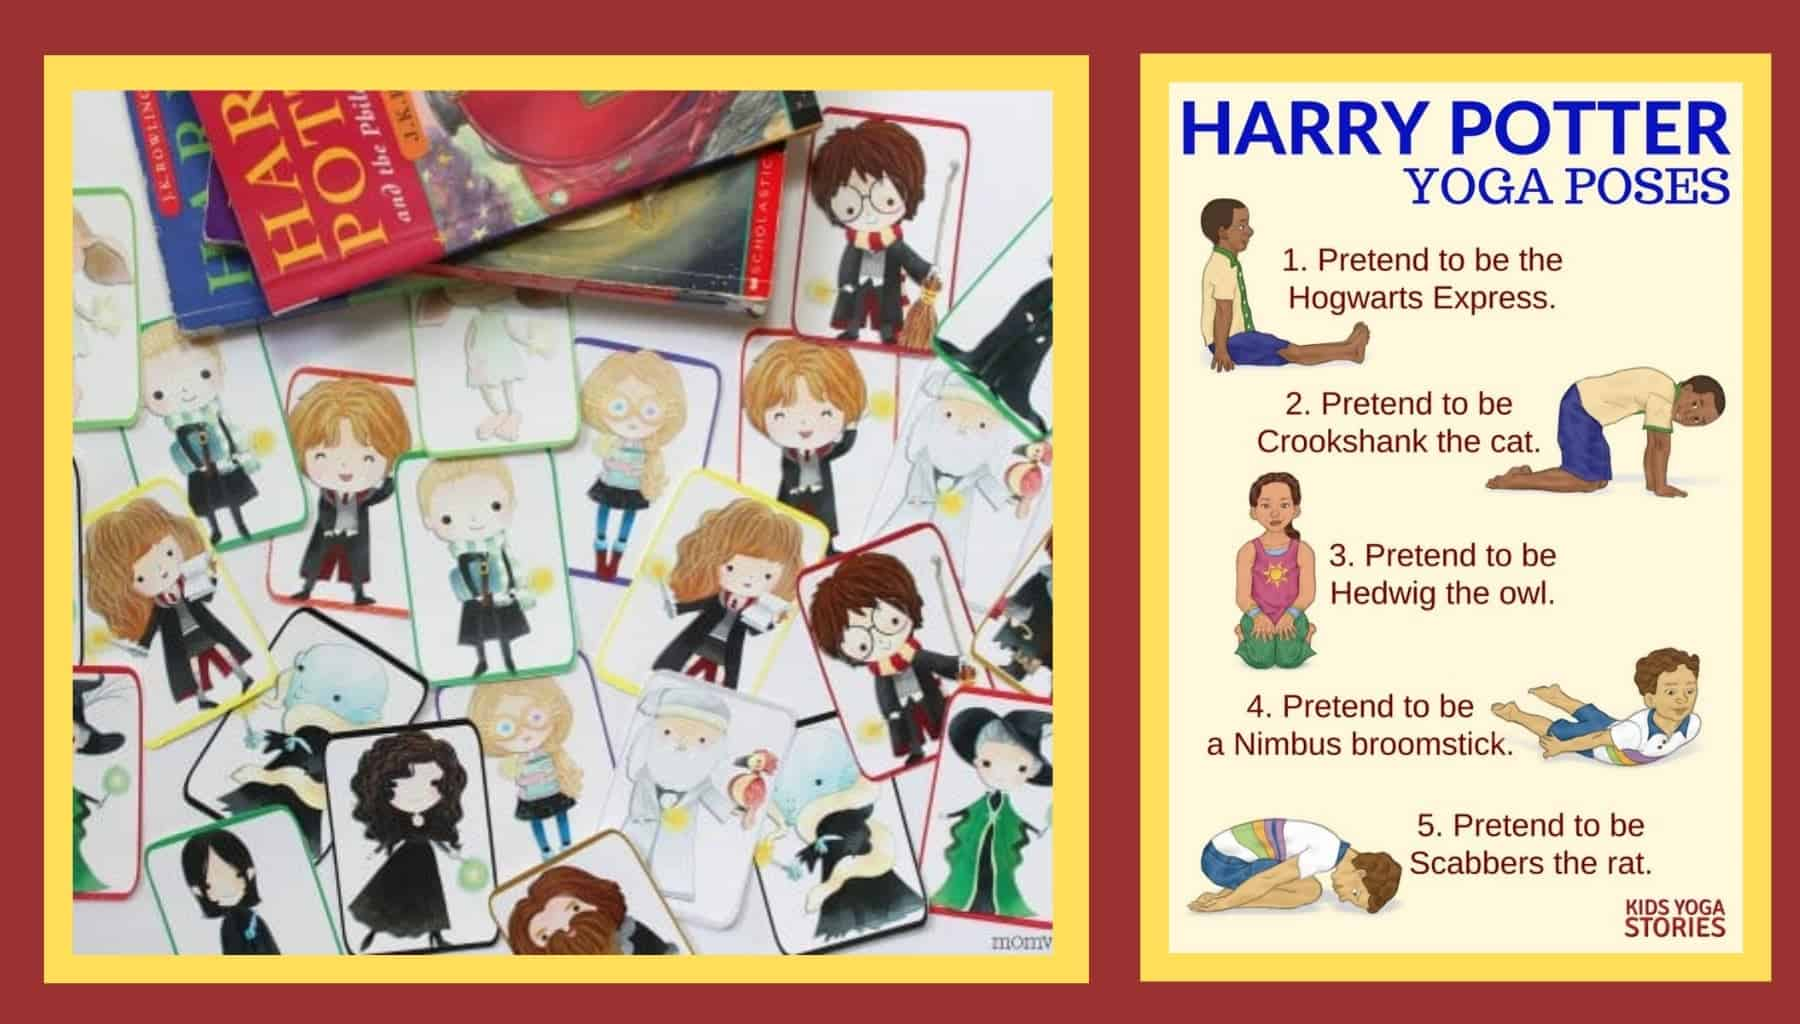 Harry Potter Games and Activities: Harry Potter Memory Game and Yoga Poses for Kids.